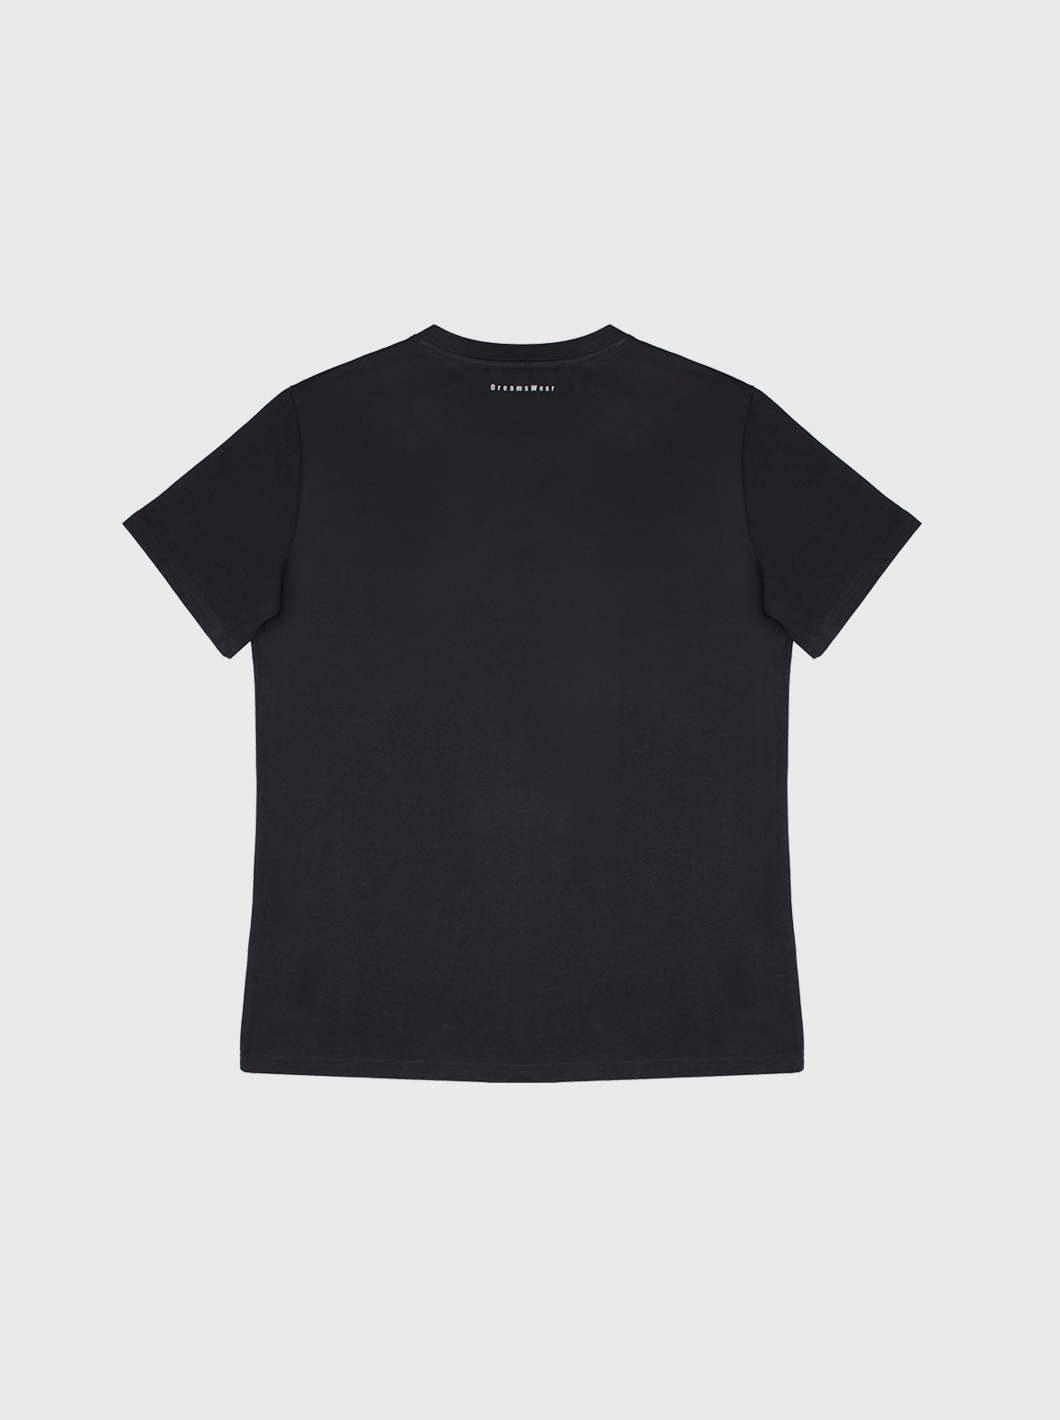 DW Embroidery Graphic Tee